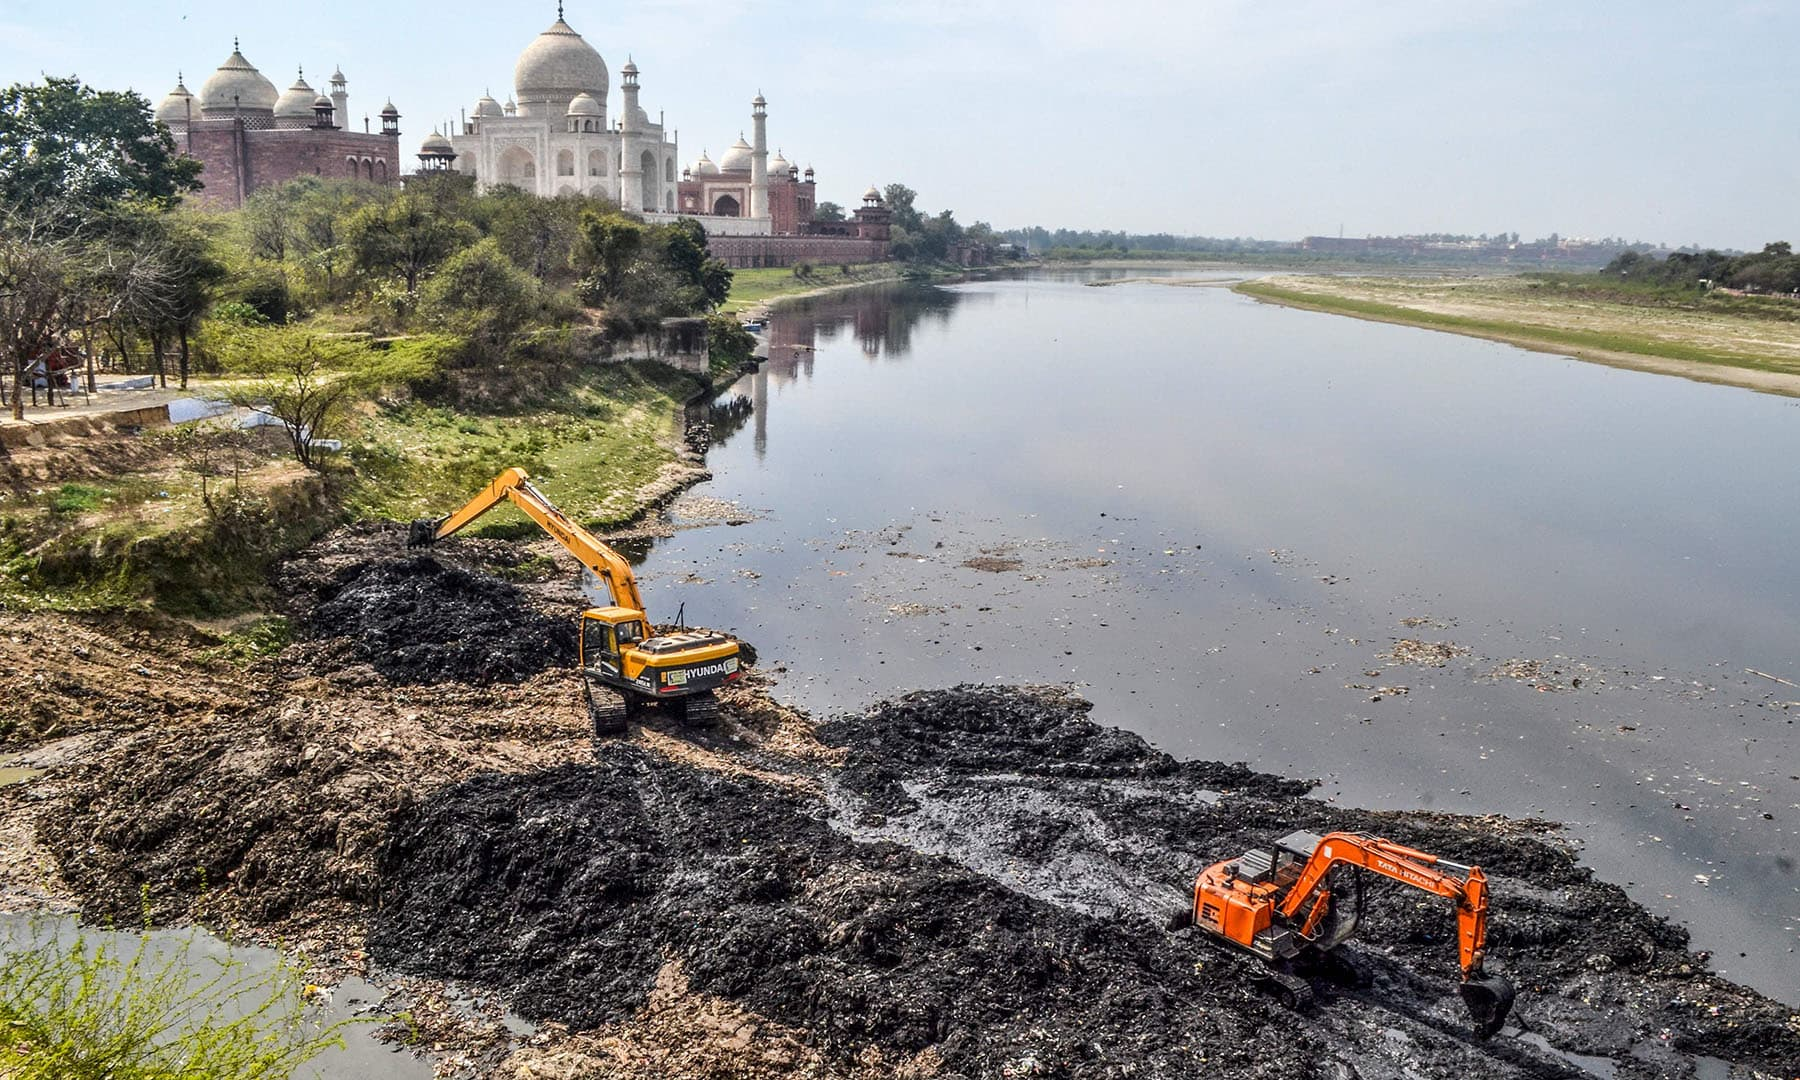 In this photo taken on February 19, Agra Municipal Corporation workers use excavators to clean the banks of the Yamuna river behind the Taj Mahal in Agra, ahead of the US President Donald Trump's visit in India.  — AFP